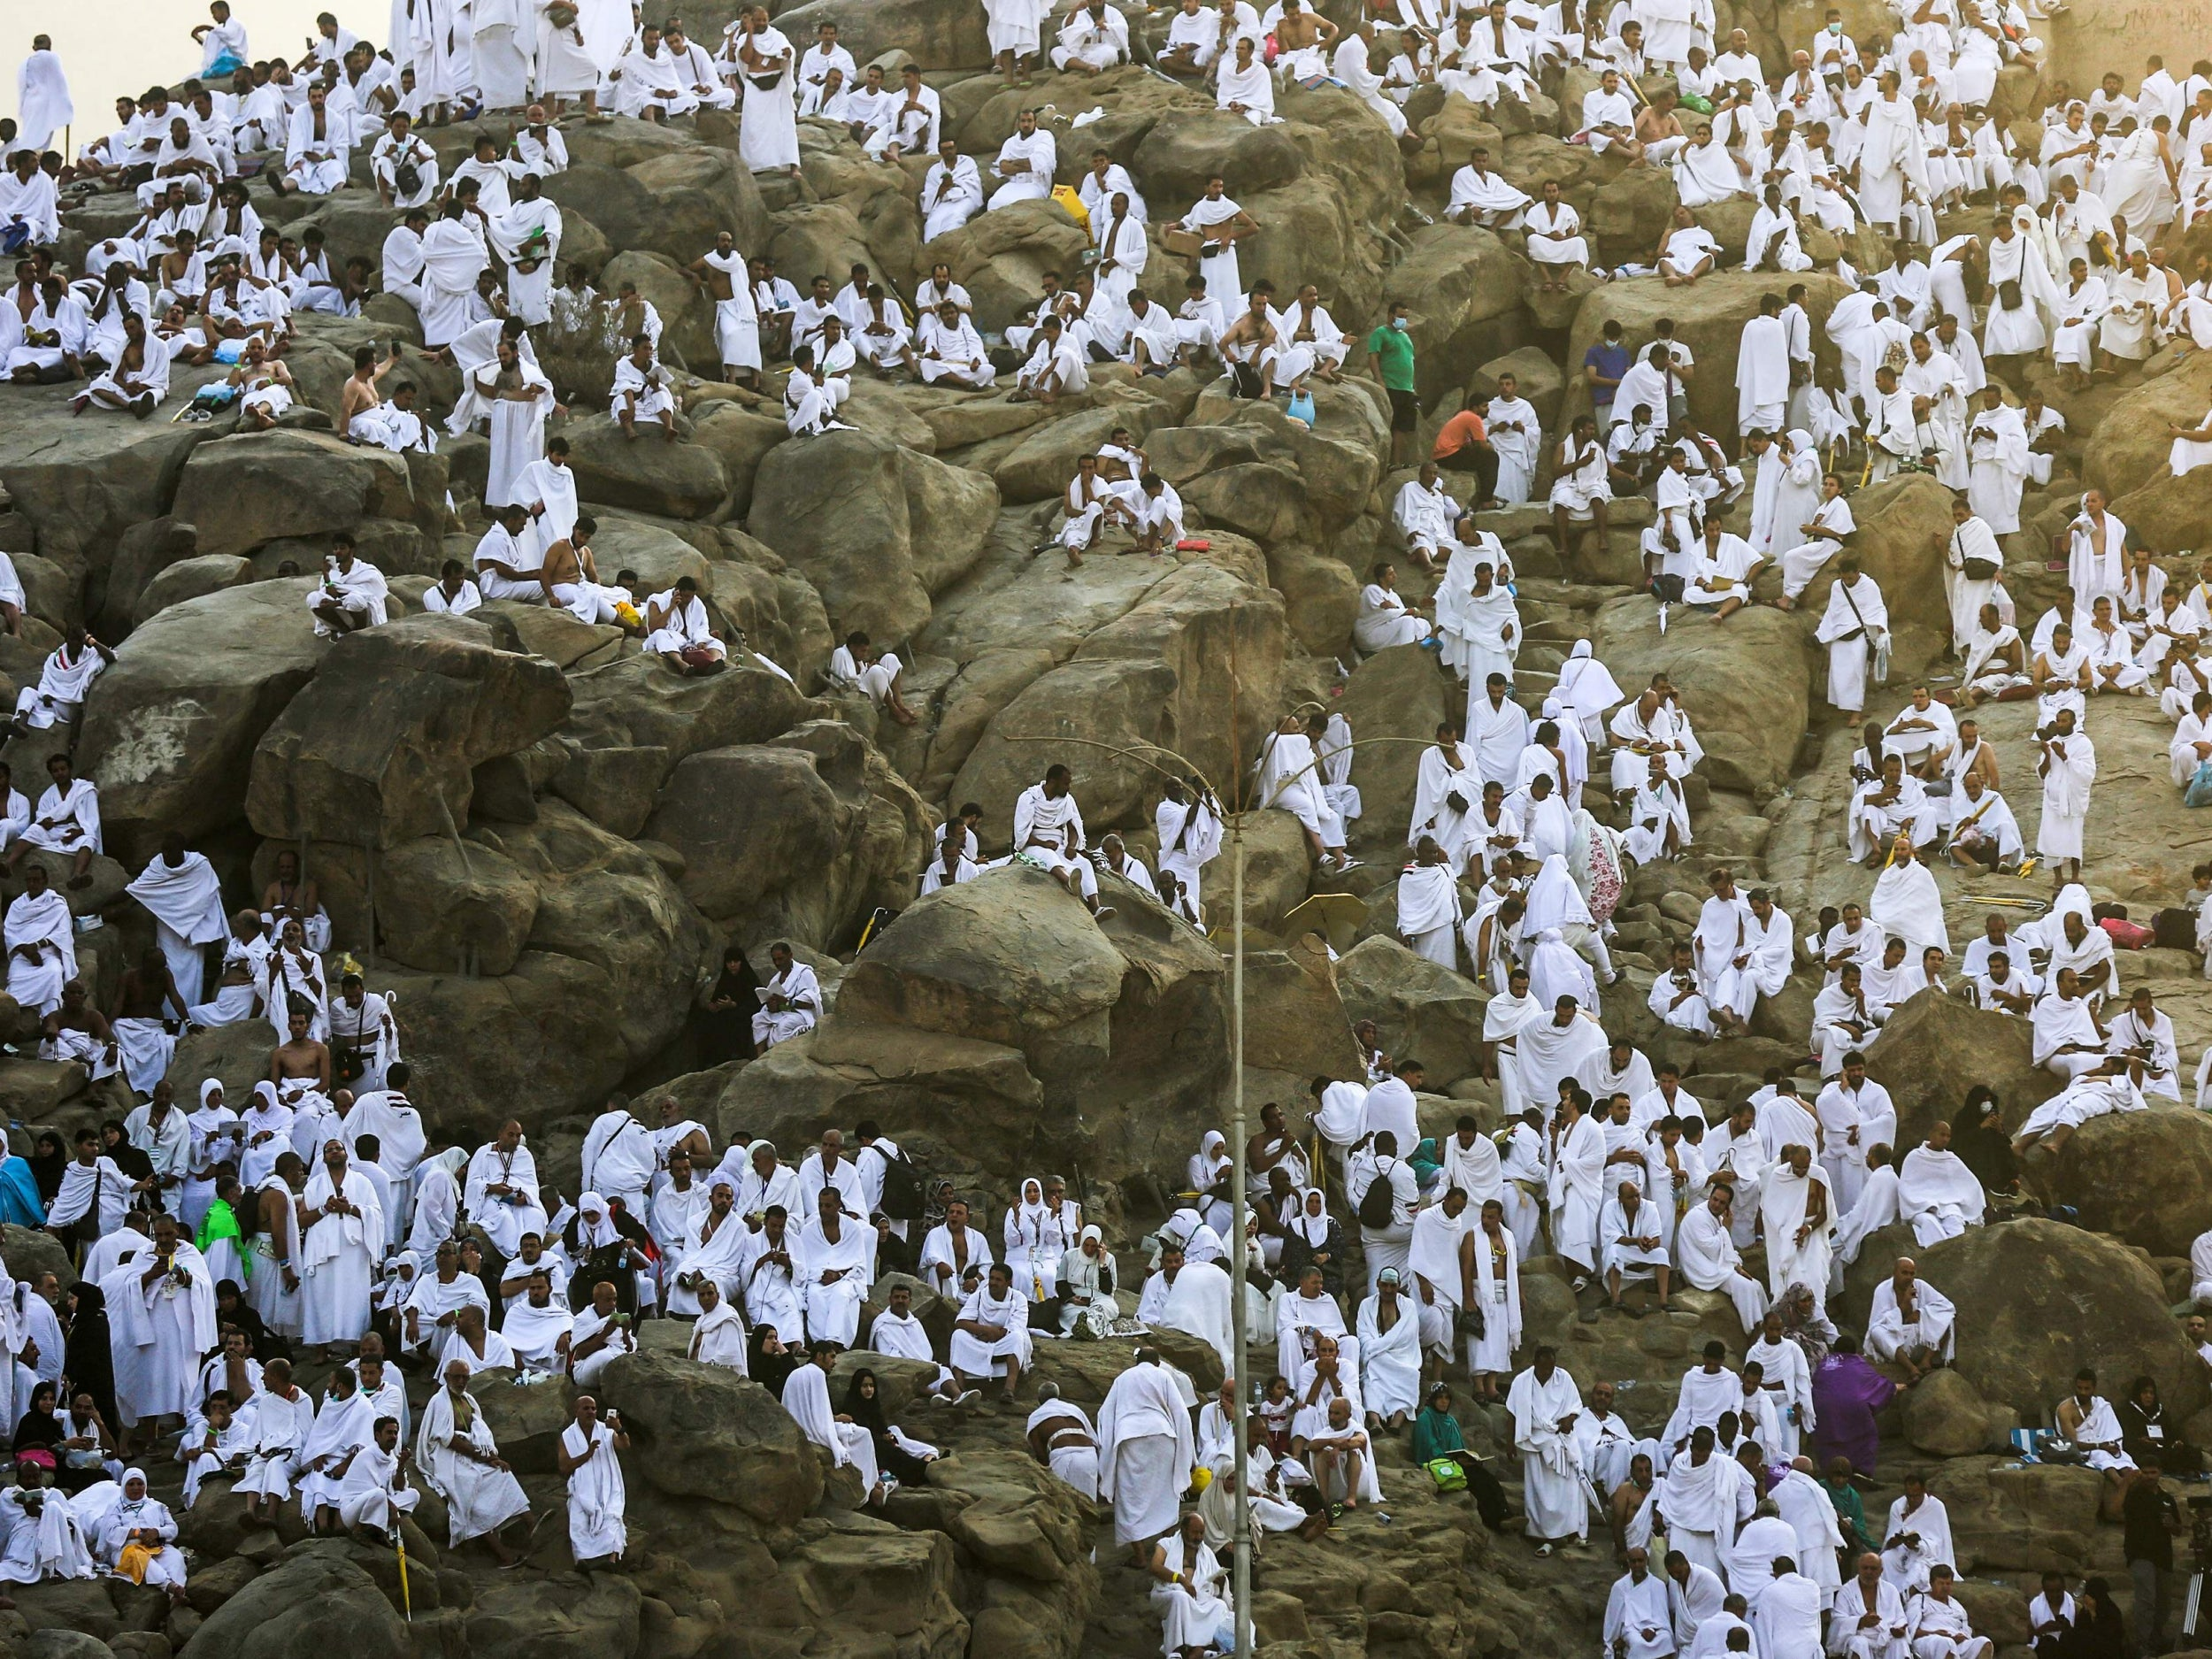 I've done the Hajj three times now – here's why I keep going back